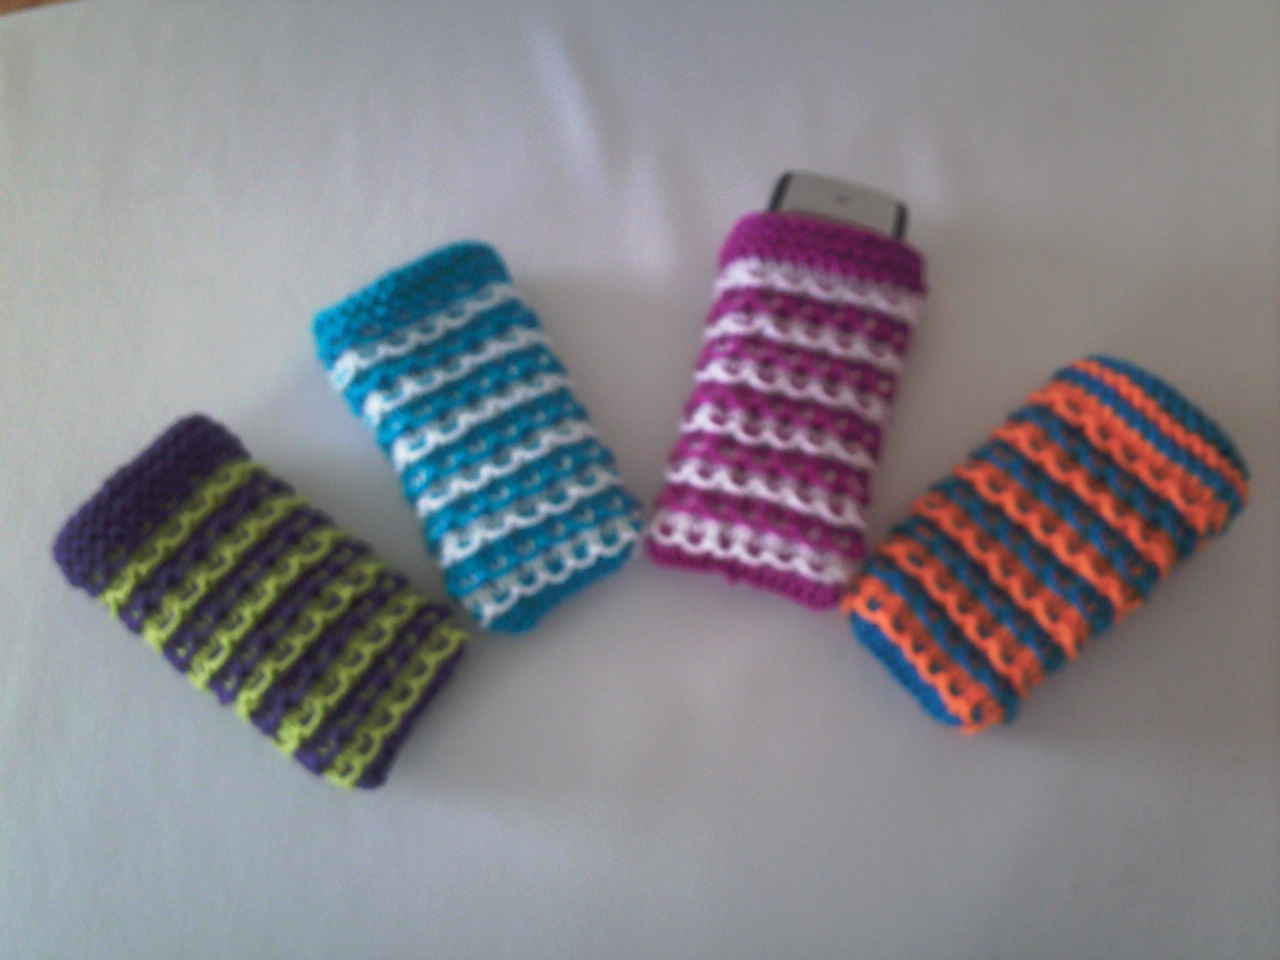 Knit'n'stitch Sue: Mobile phone covers